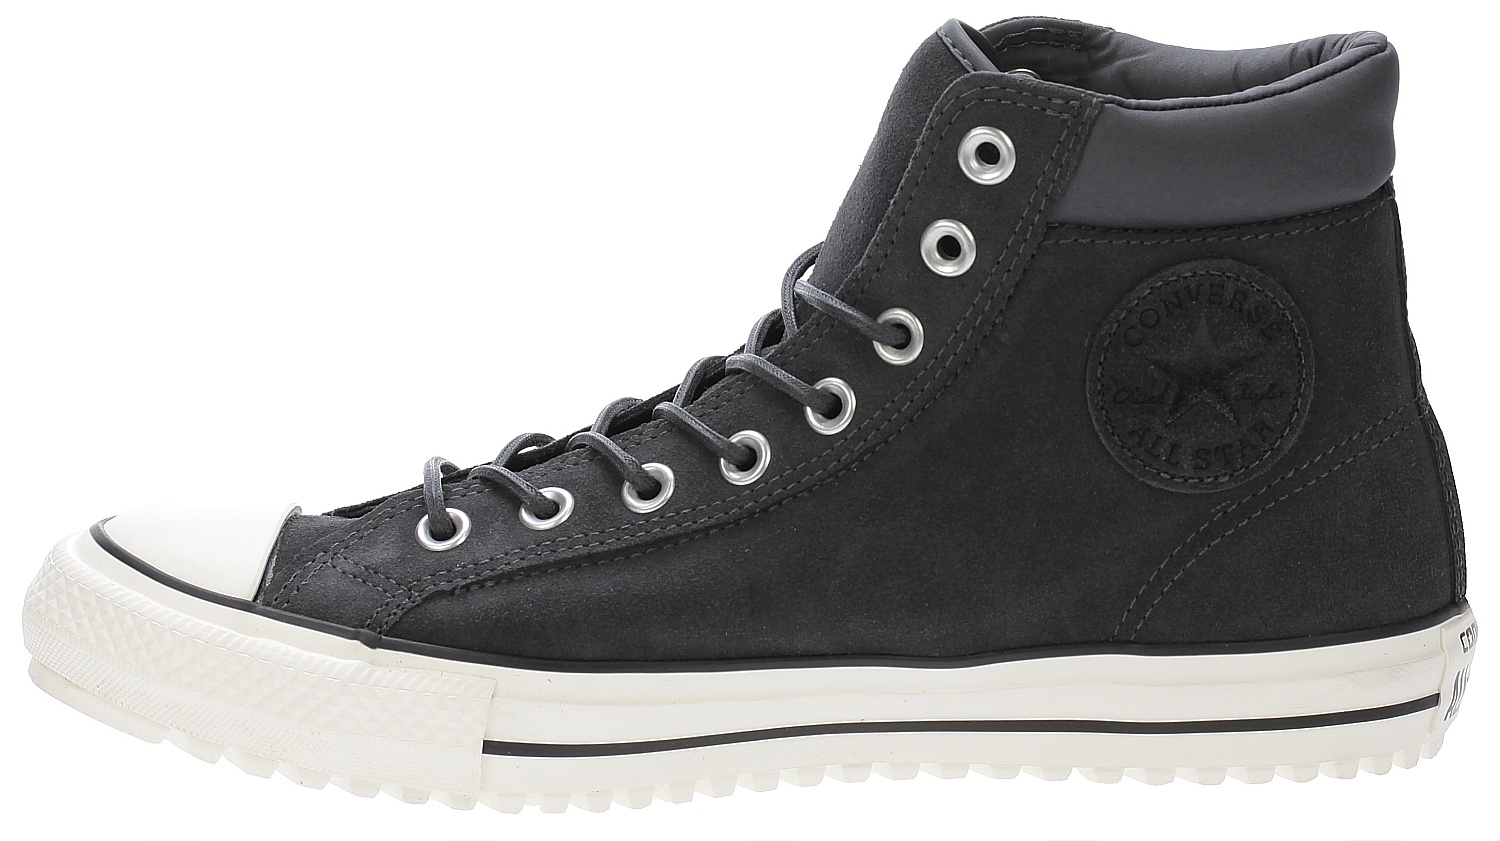 308d03e87987f2 ... boty Converse Chuck Taylor All Star Converse Boot PC Hi - 153675 Almost  Black